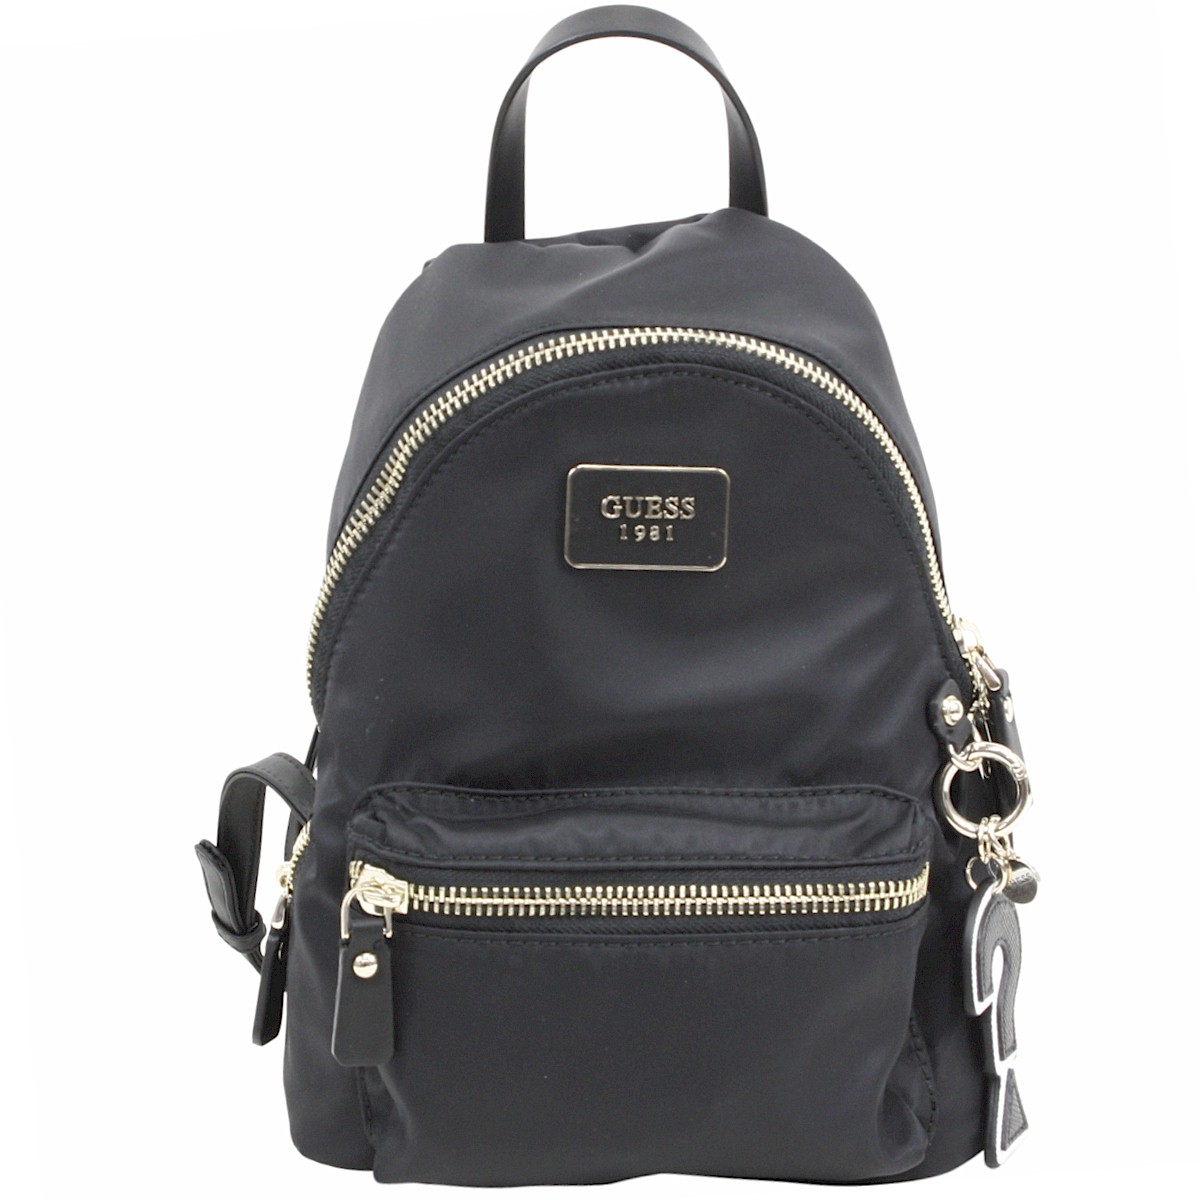 Shop for mini backpacks, mini backpacks for women, mini backpacks for kids, leather mini backpacks and mini backpacks for men for less at shopnow-vjpmehag.cf Save money. Live better.